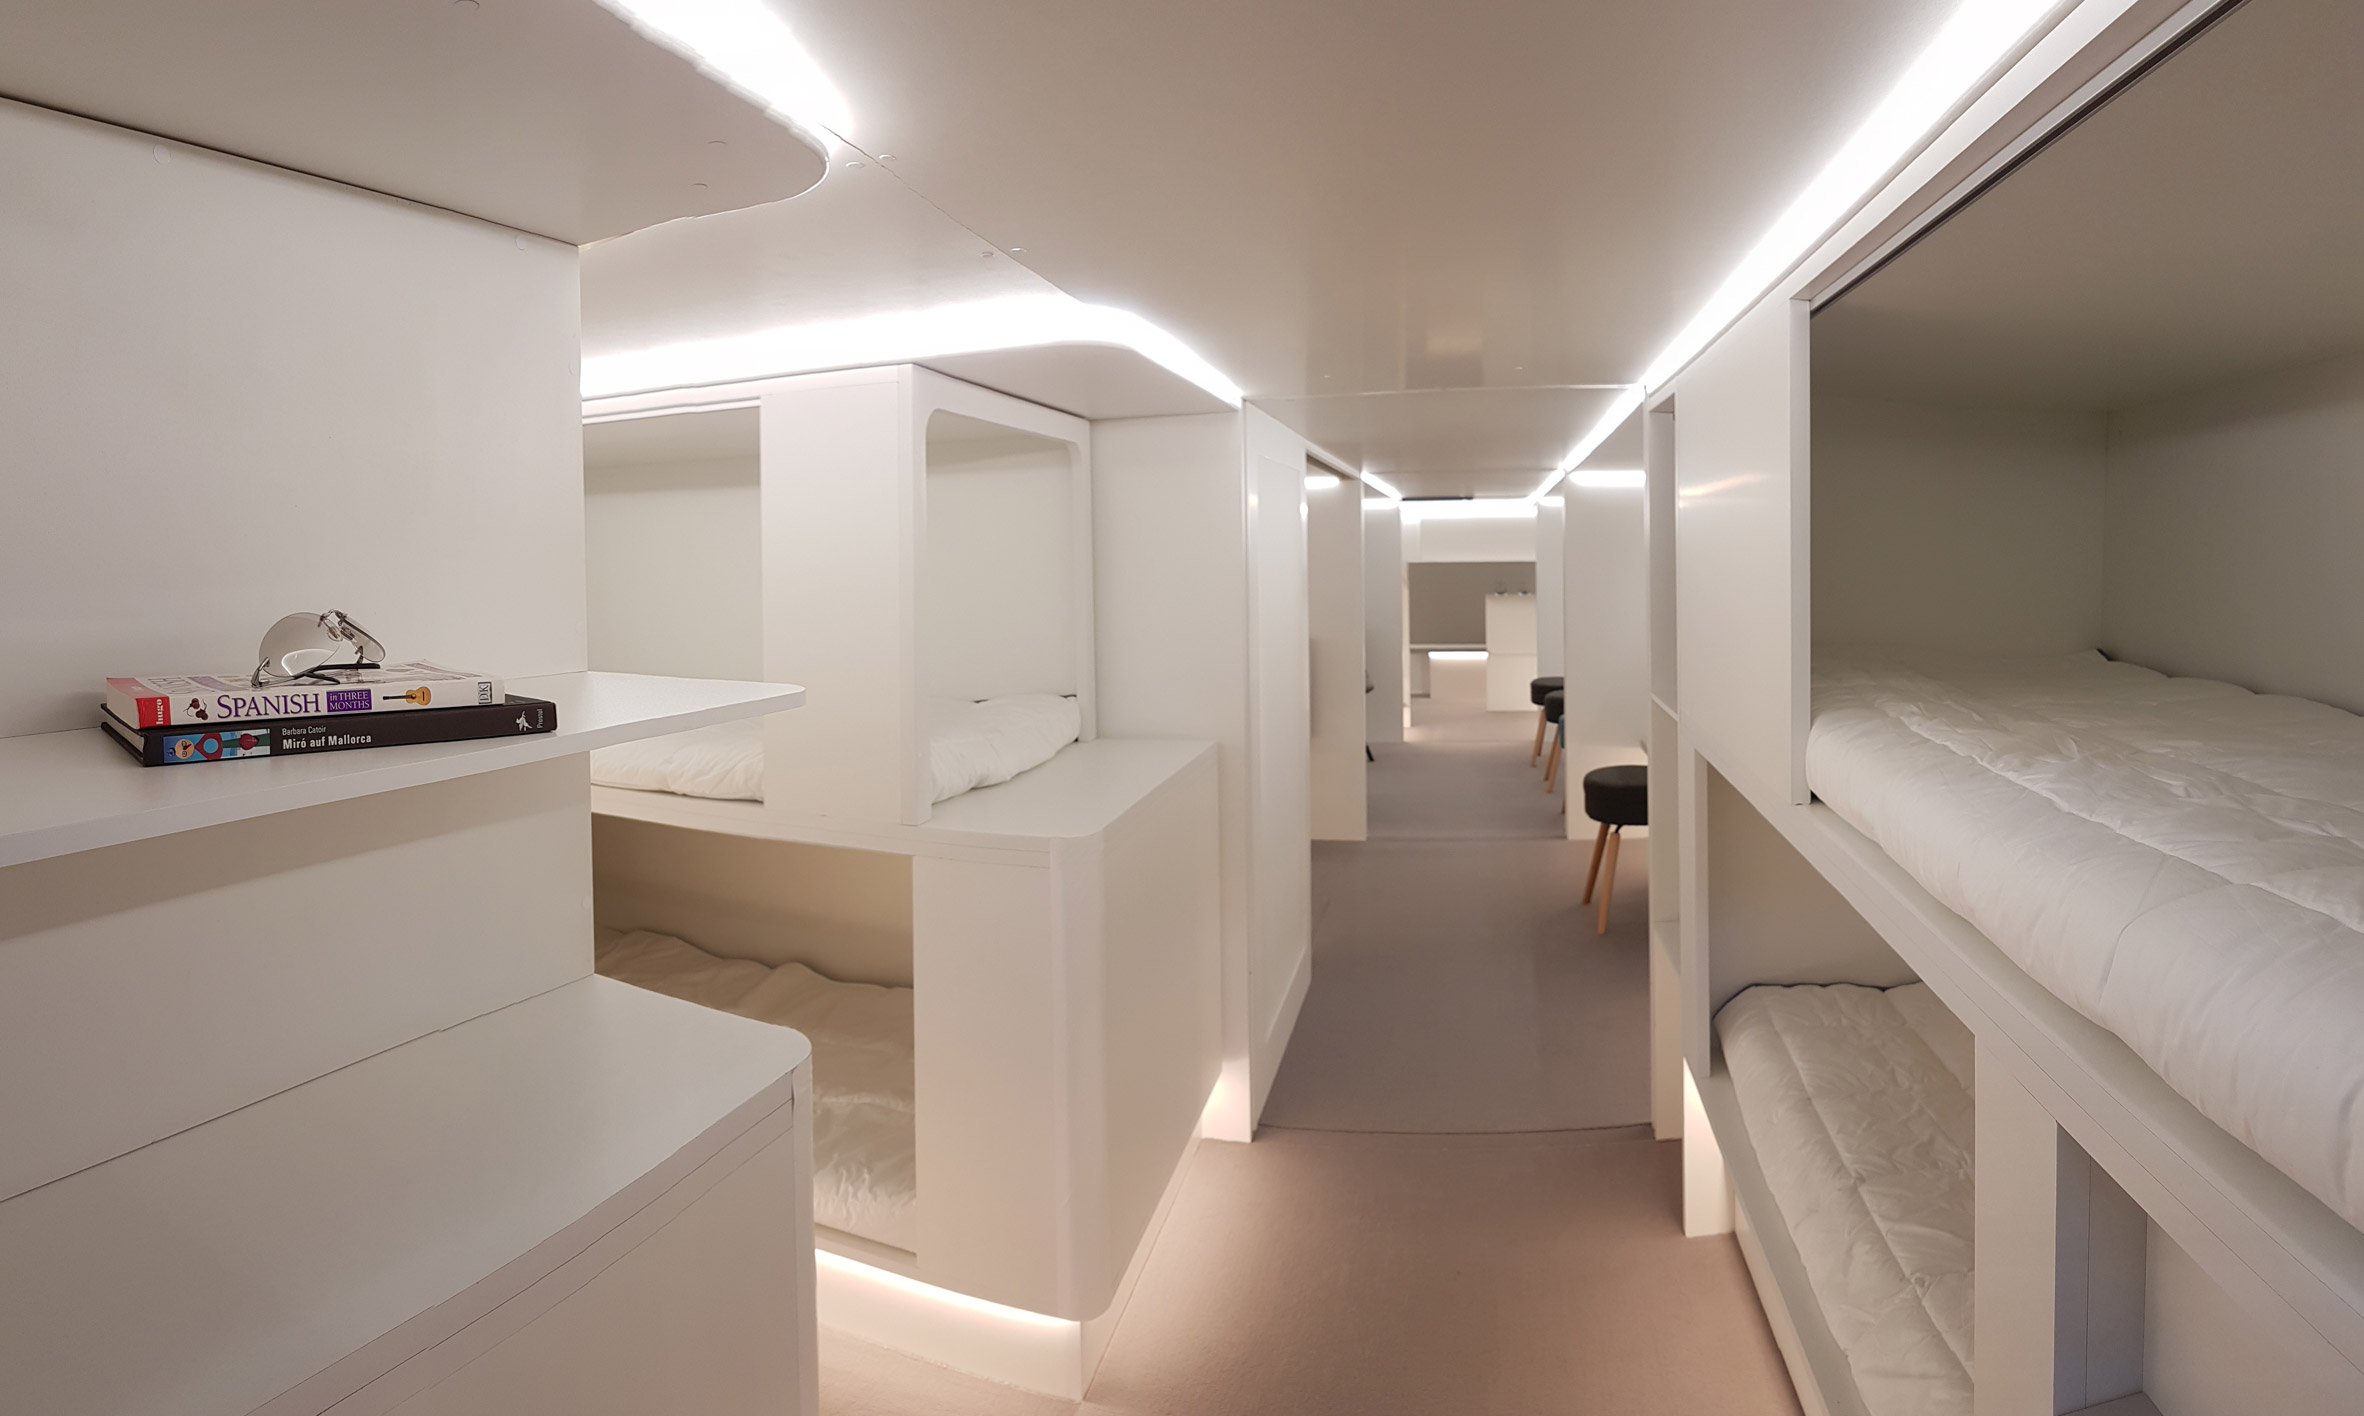 Airbus Could Install Bunk Beds On Passenger Planes By 2020